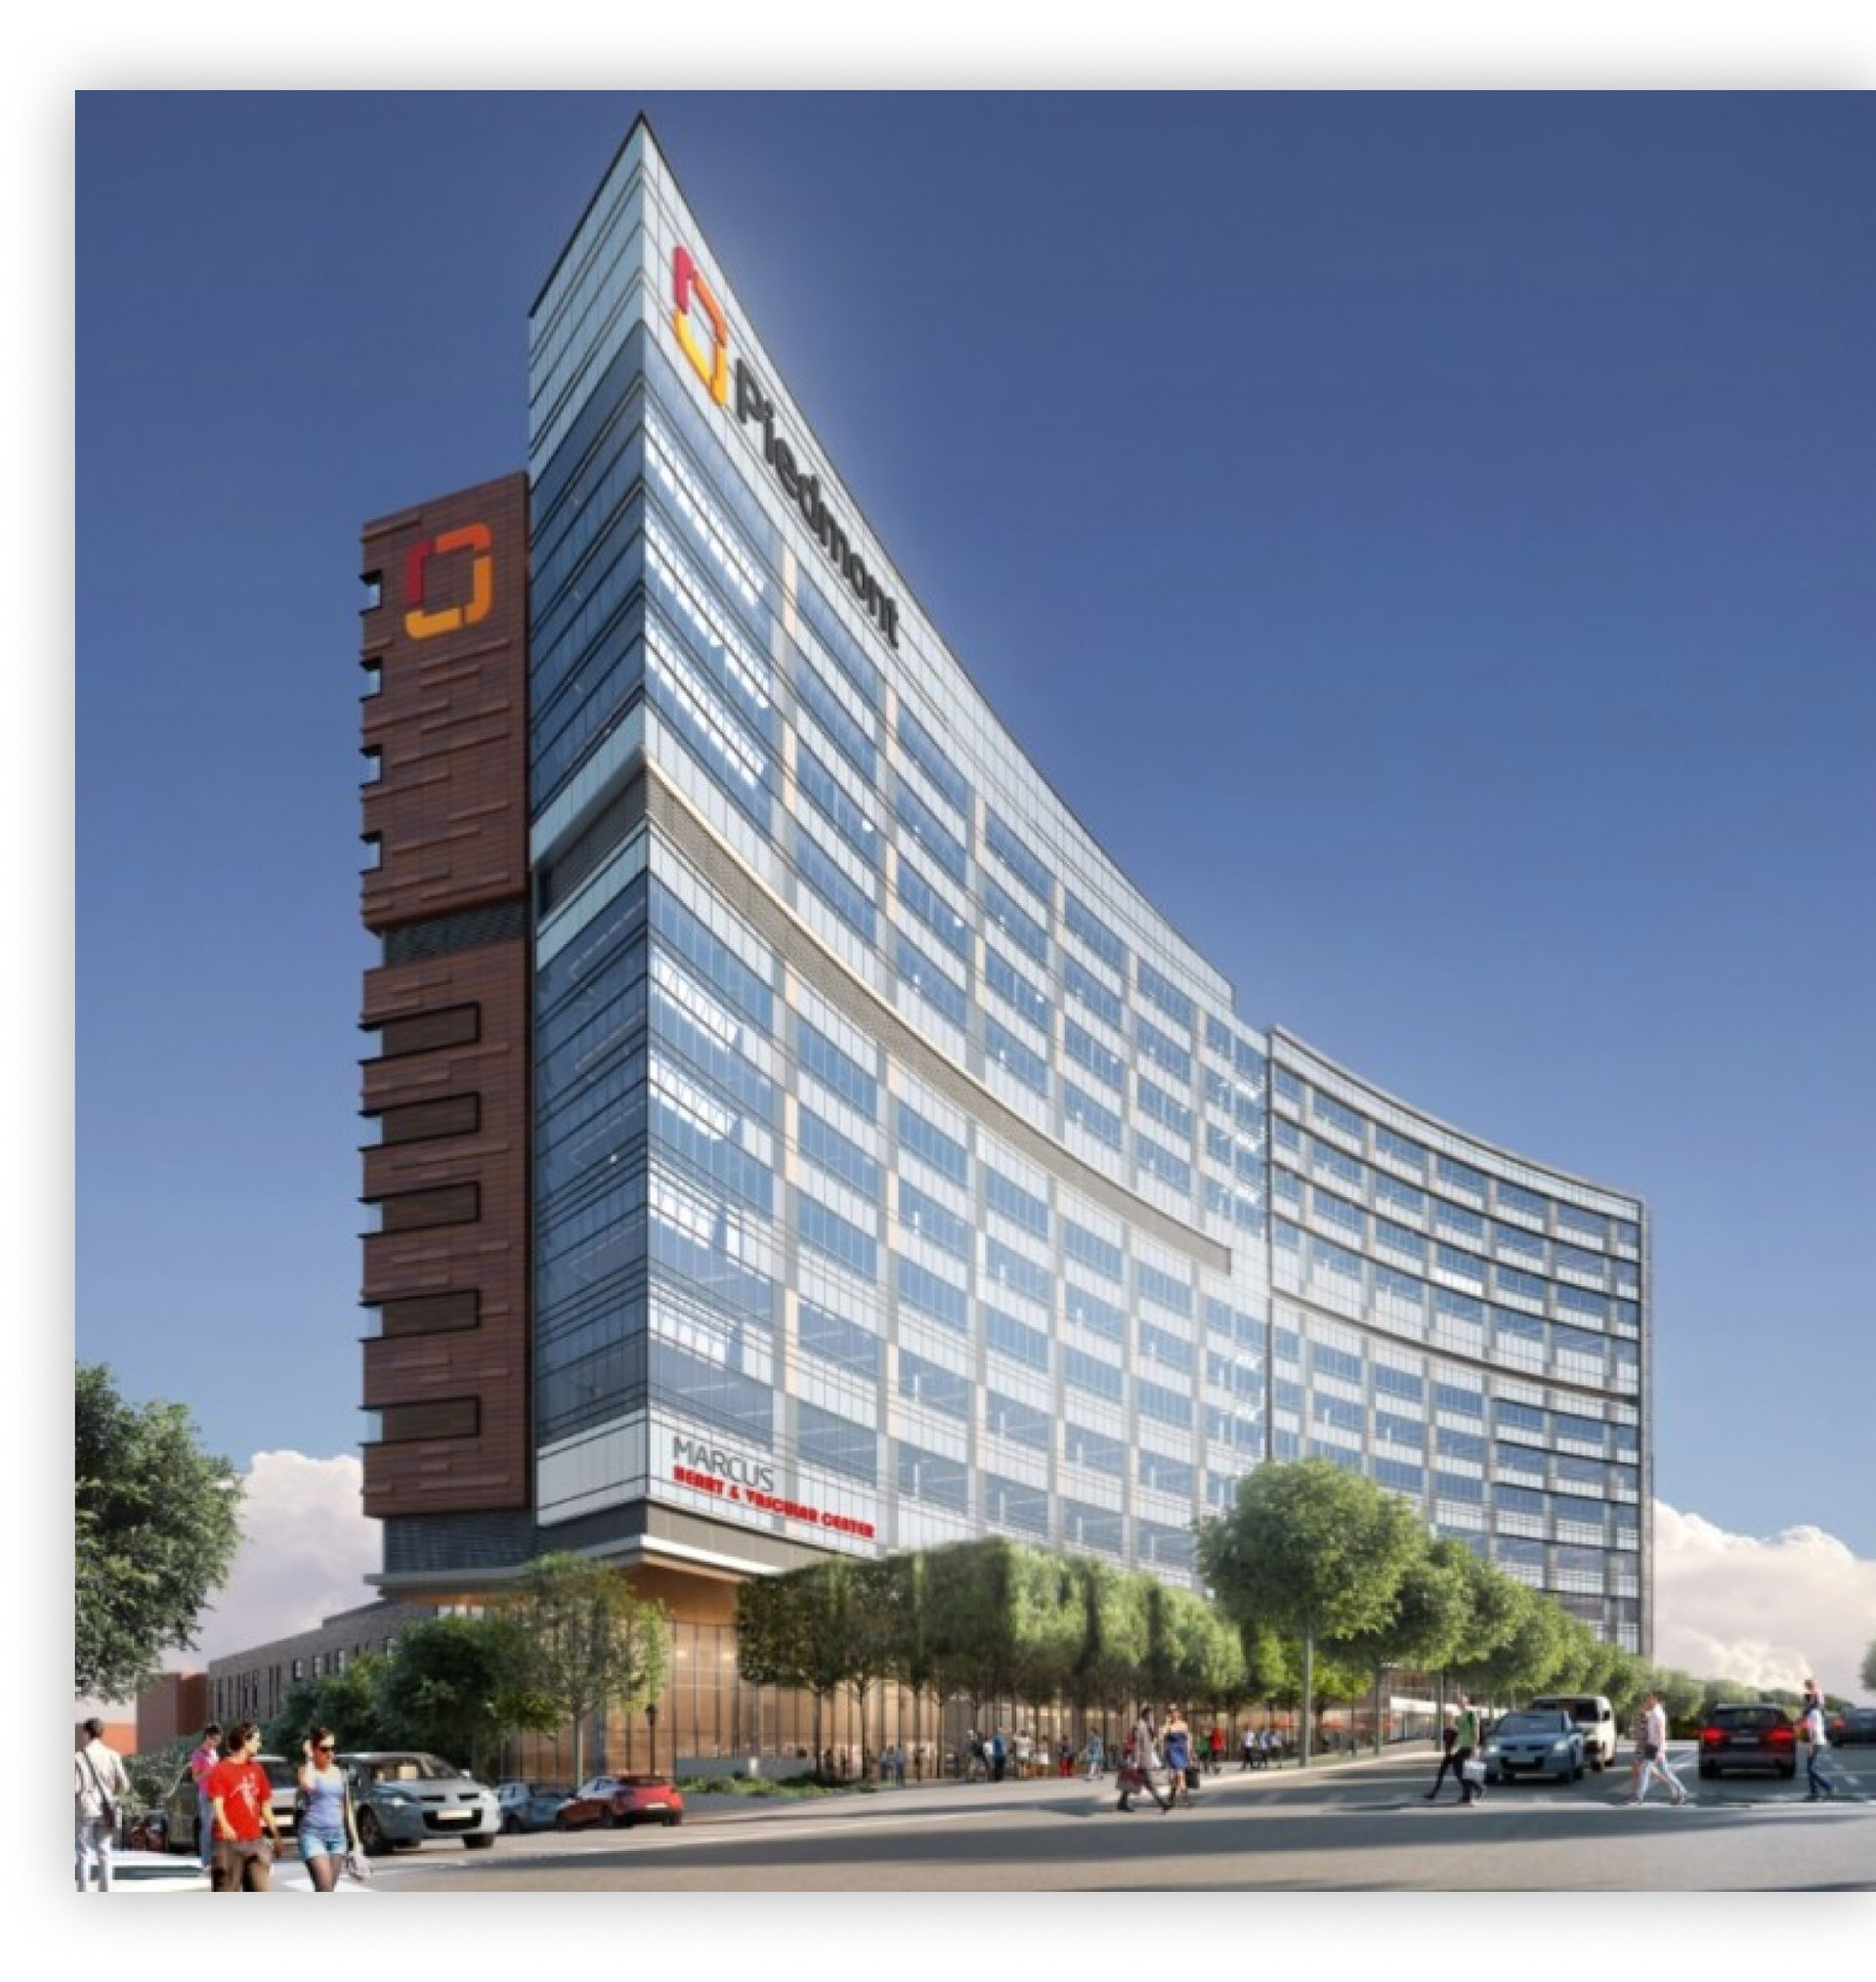 Atlanta Piedmont Hospital Construction by Brasfield and Gorrie with Autodesk